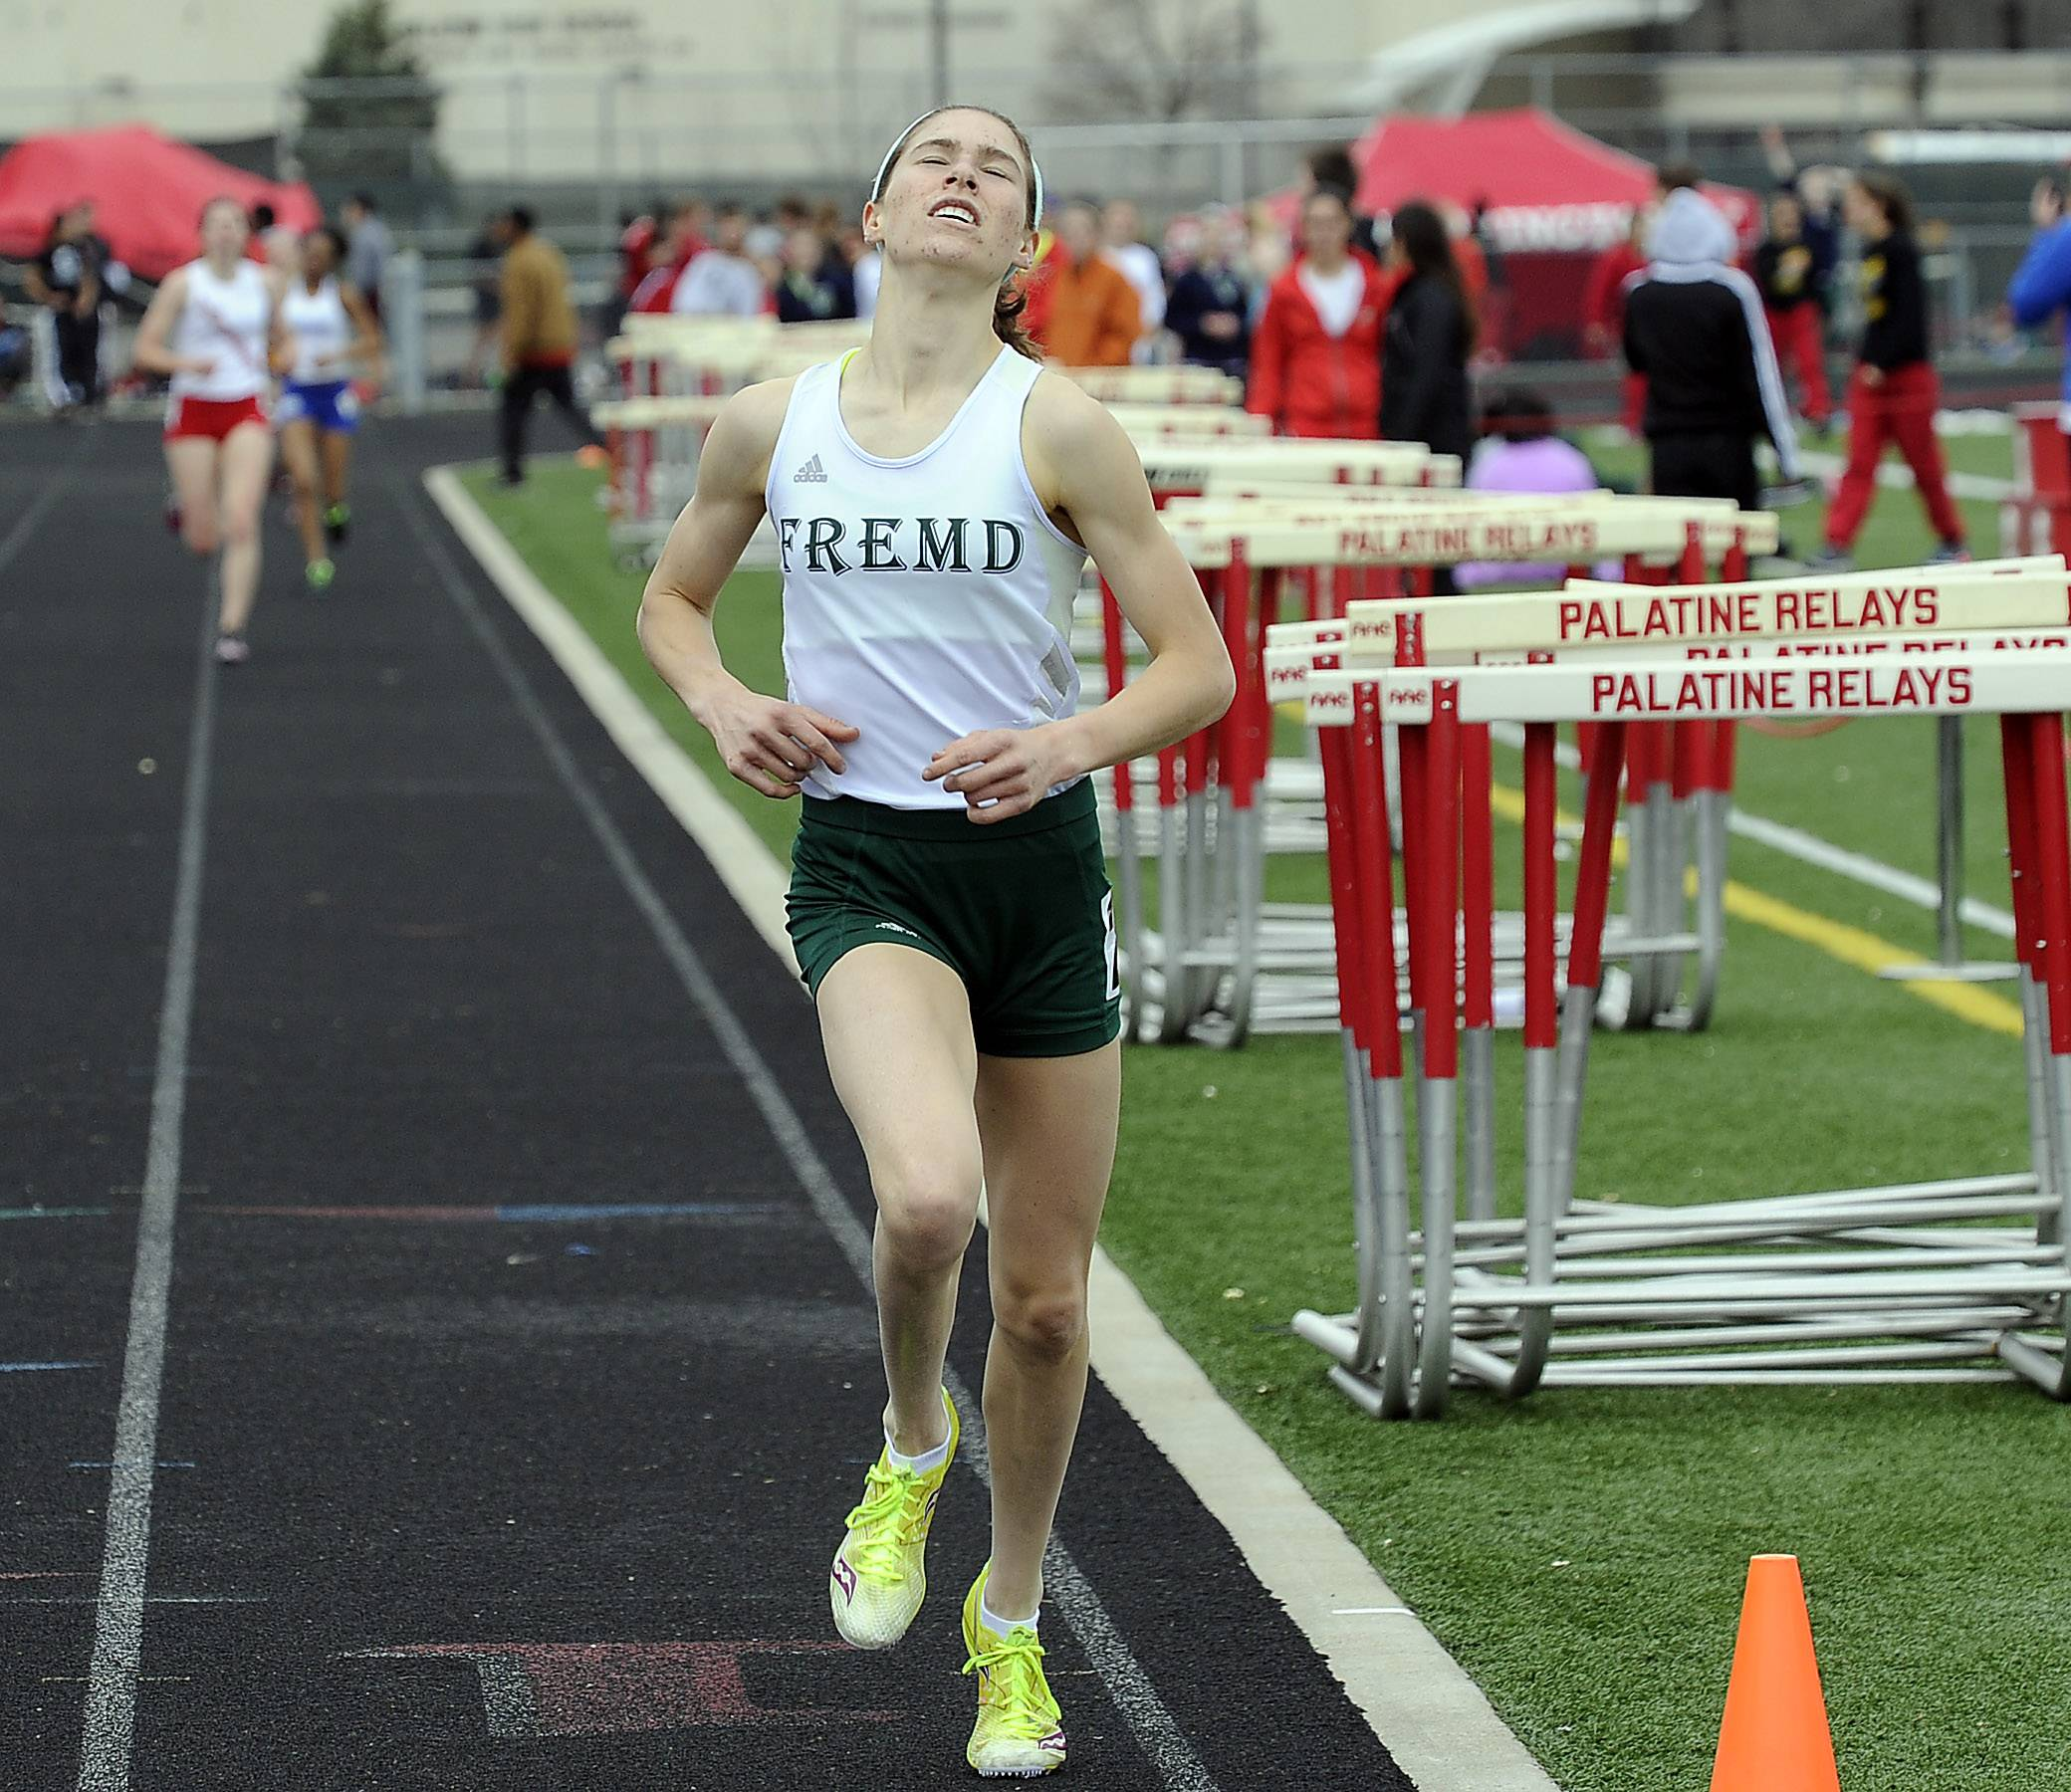 Katie Escobar of Fremd earns a second-place finish in the 1,600 meters at Palatine High School on Saturday.